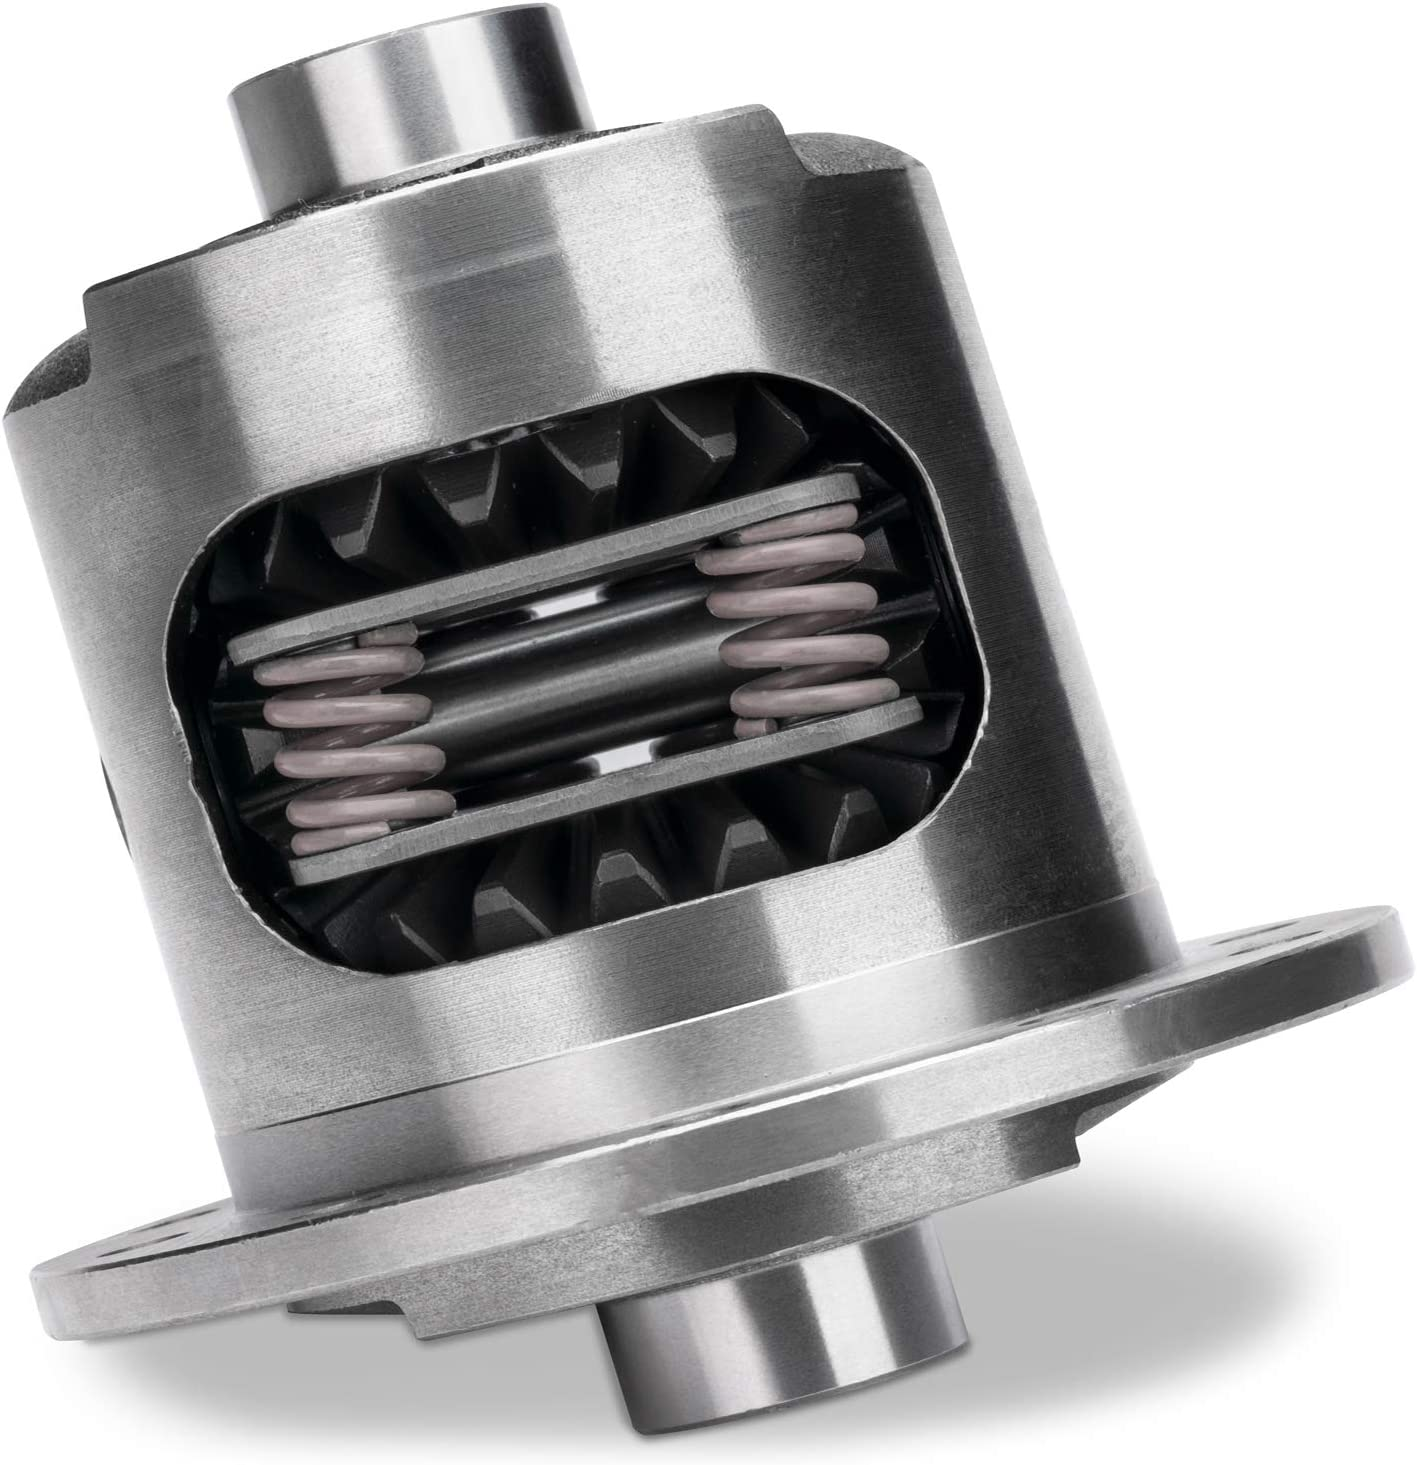 WEILEITE YDGGM8.5-3-30-1 Limited Slip Differential Posi Unit 8.6//8.5 30 Spline 10 Bolt Compatible With Chevy GM Replaces 542022 19559-010